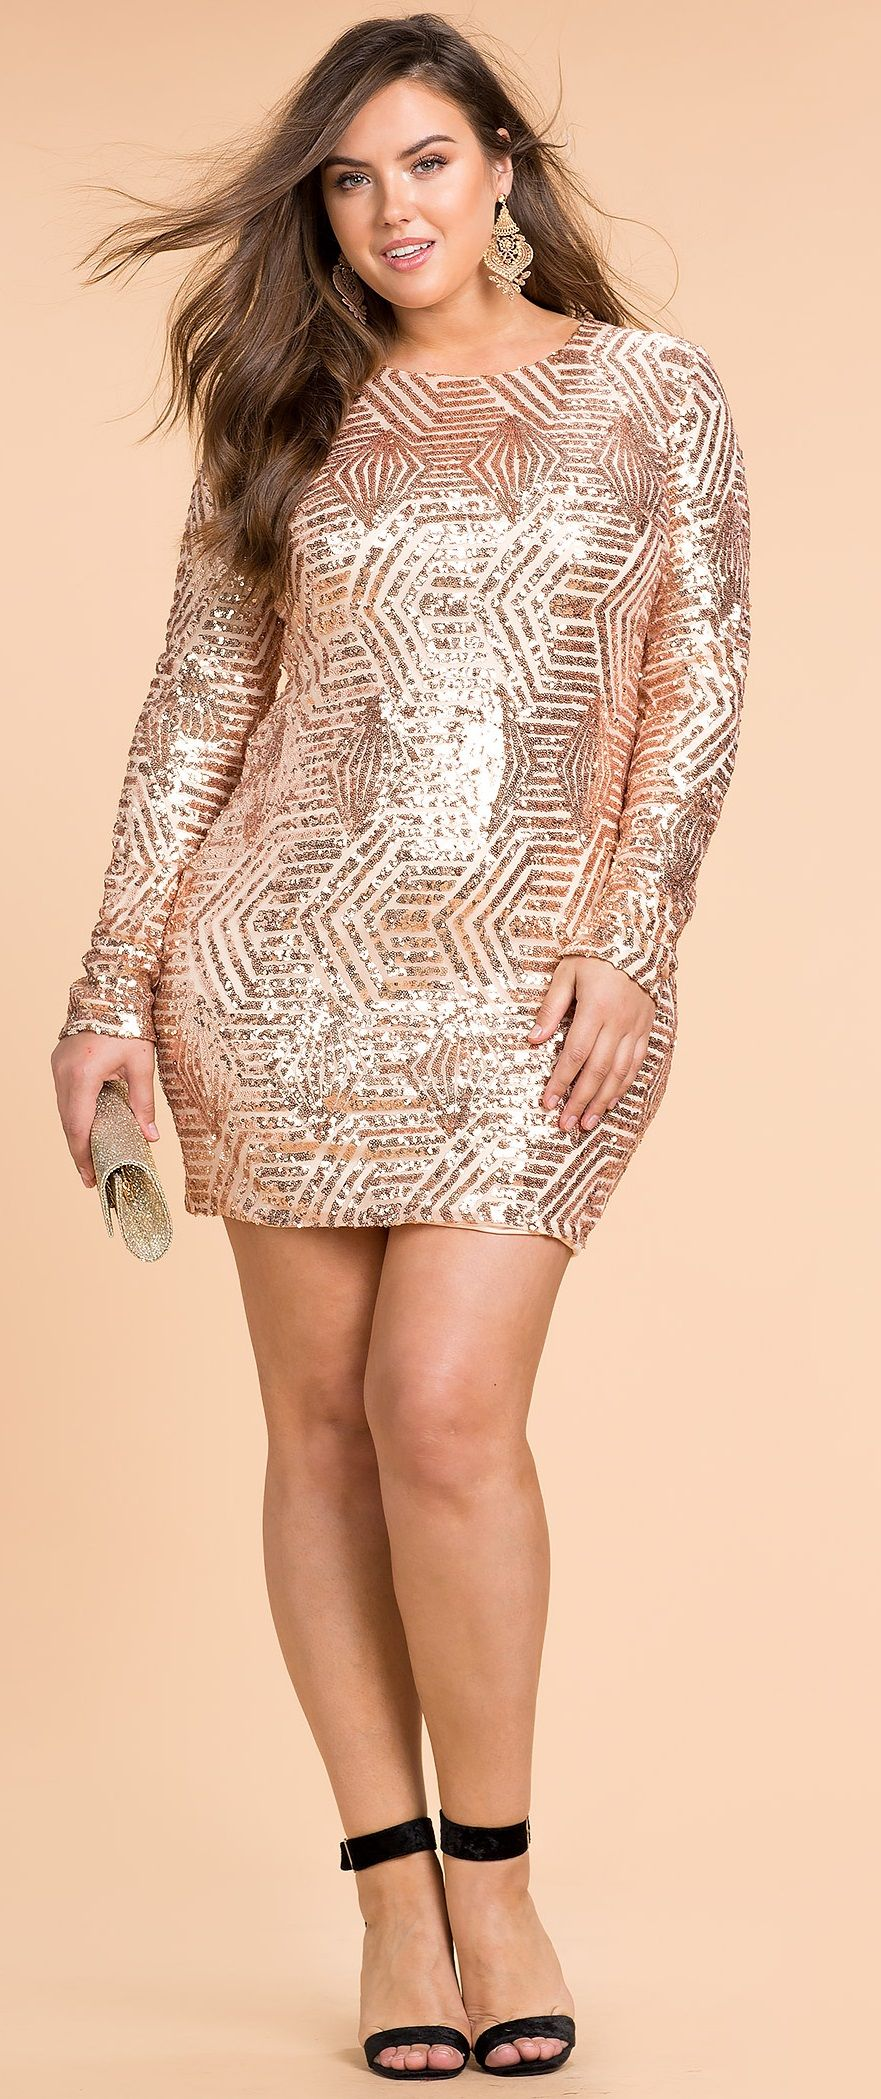 0a6df6aa869 Plus Size Sequin Bodycon Dress - not this color for me